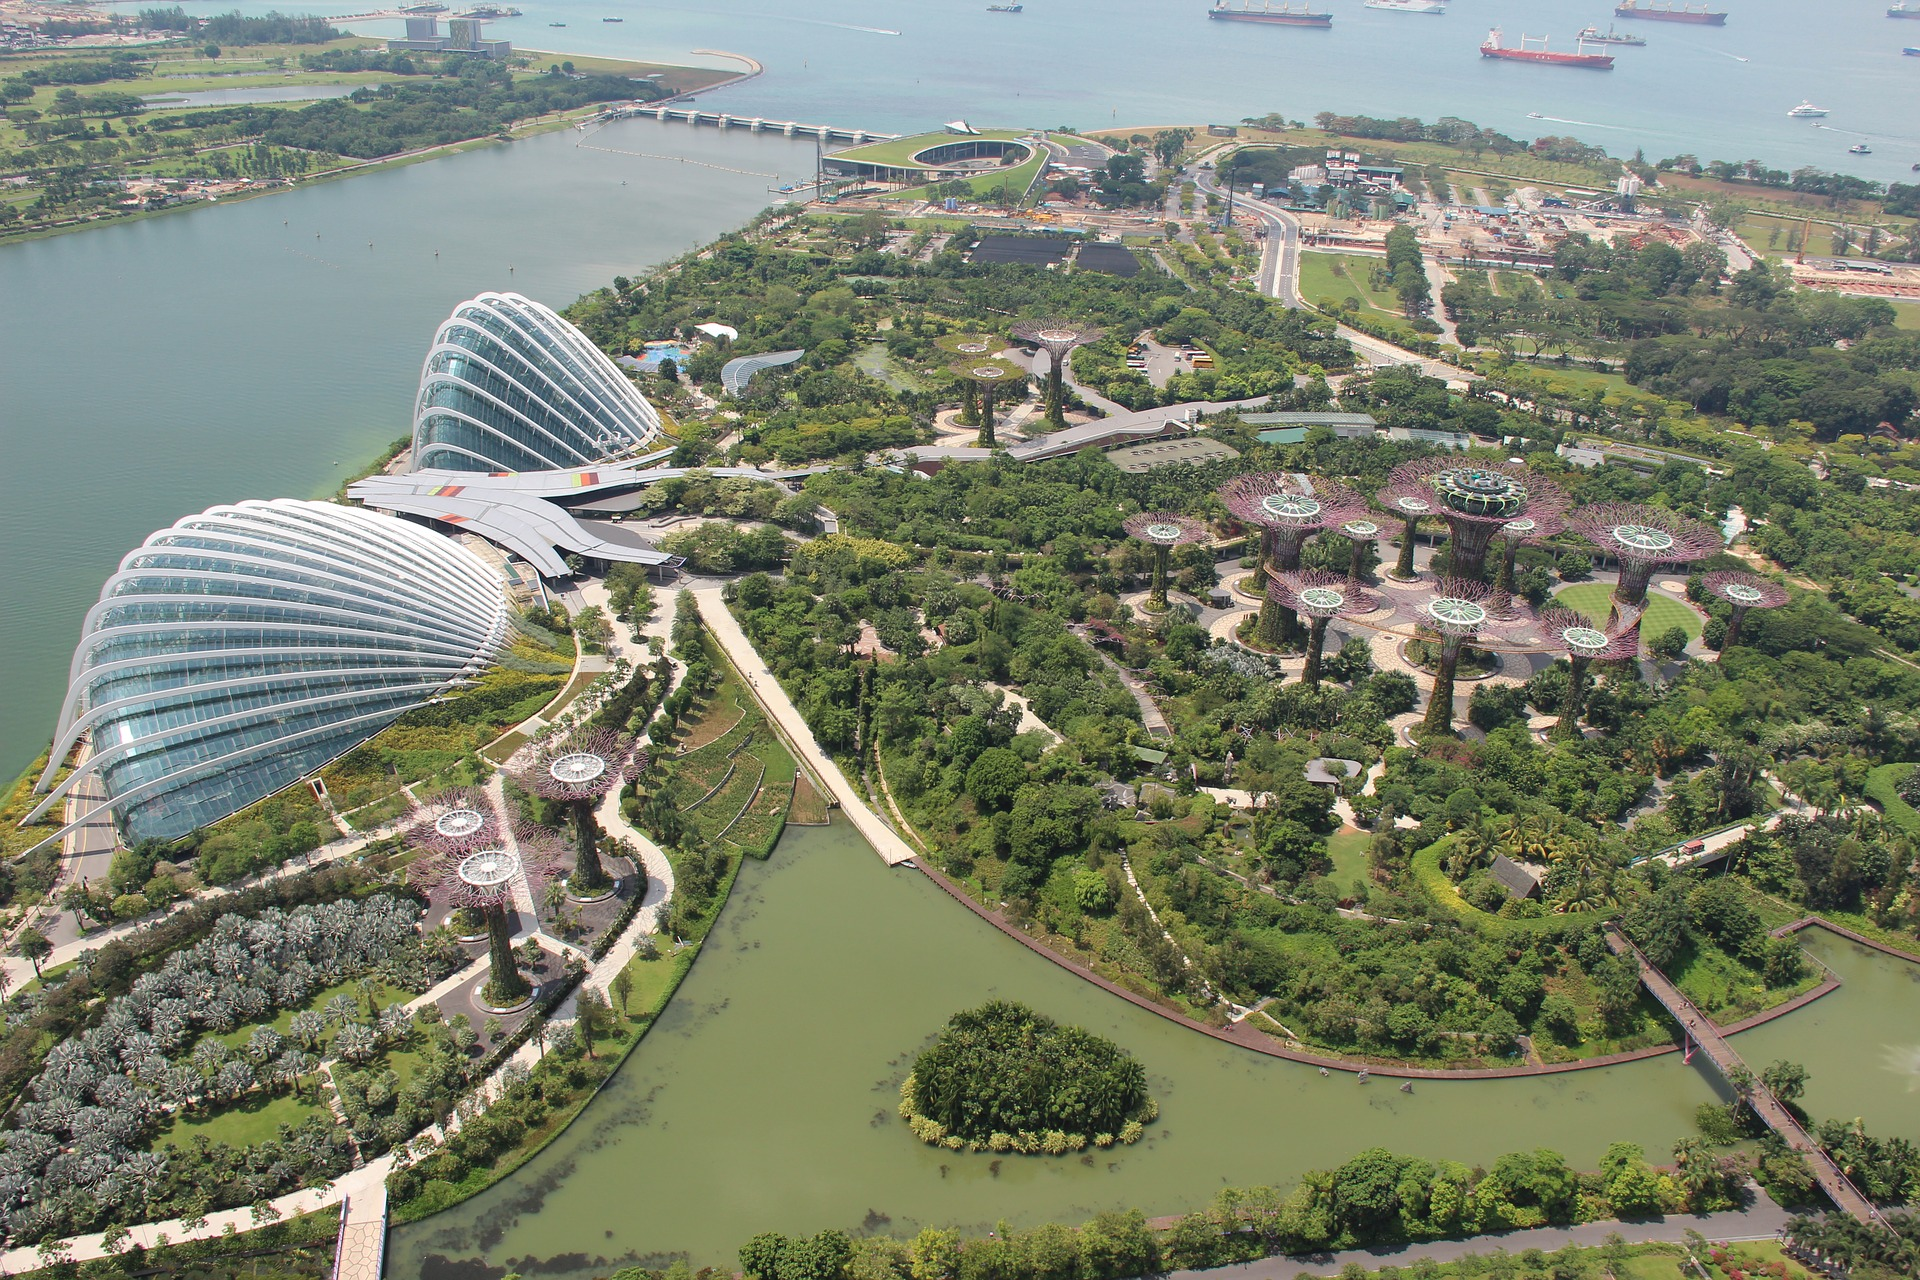 Aerial view of Gardens by the Bay, Singapore